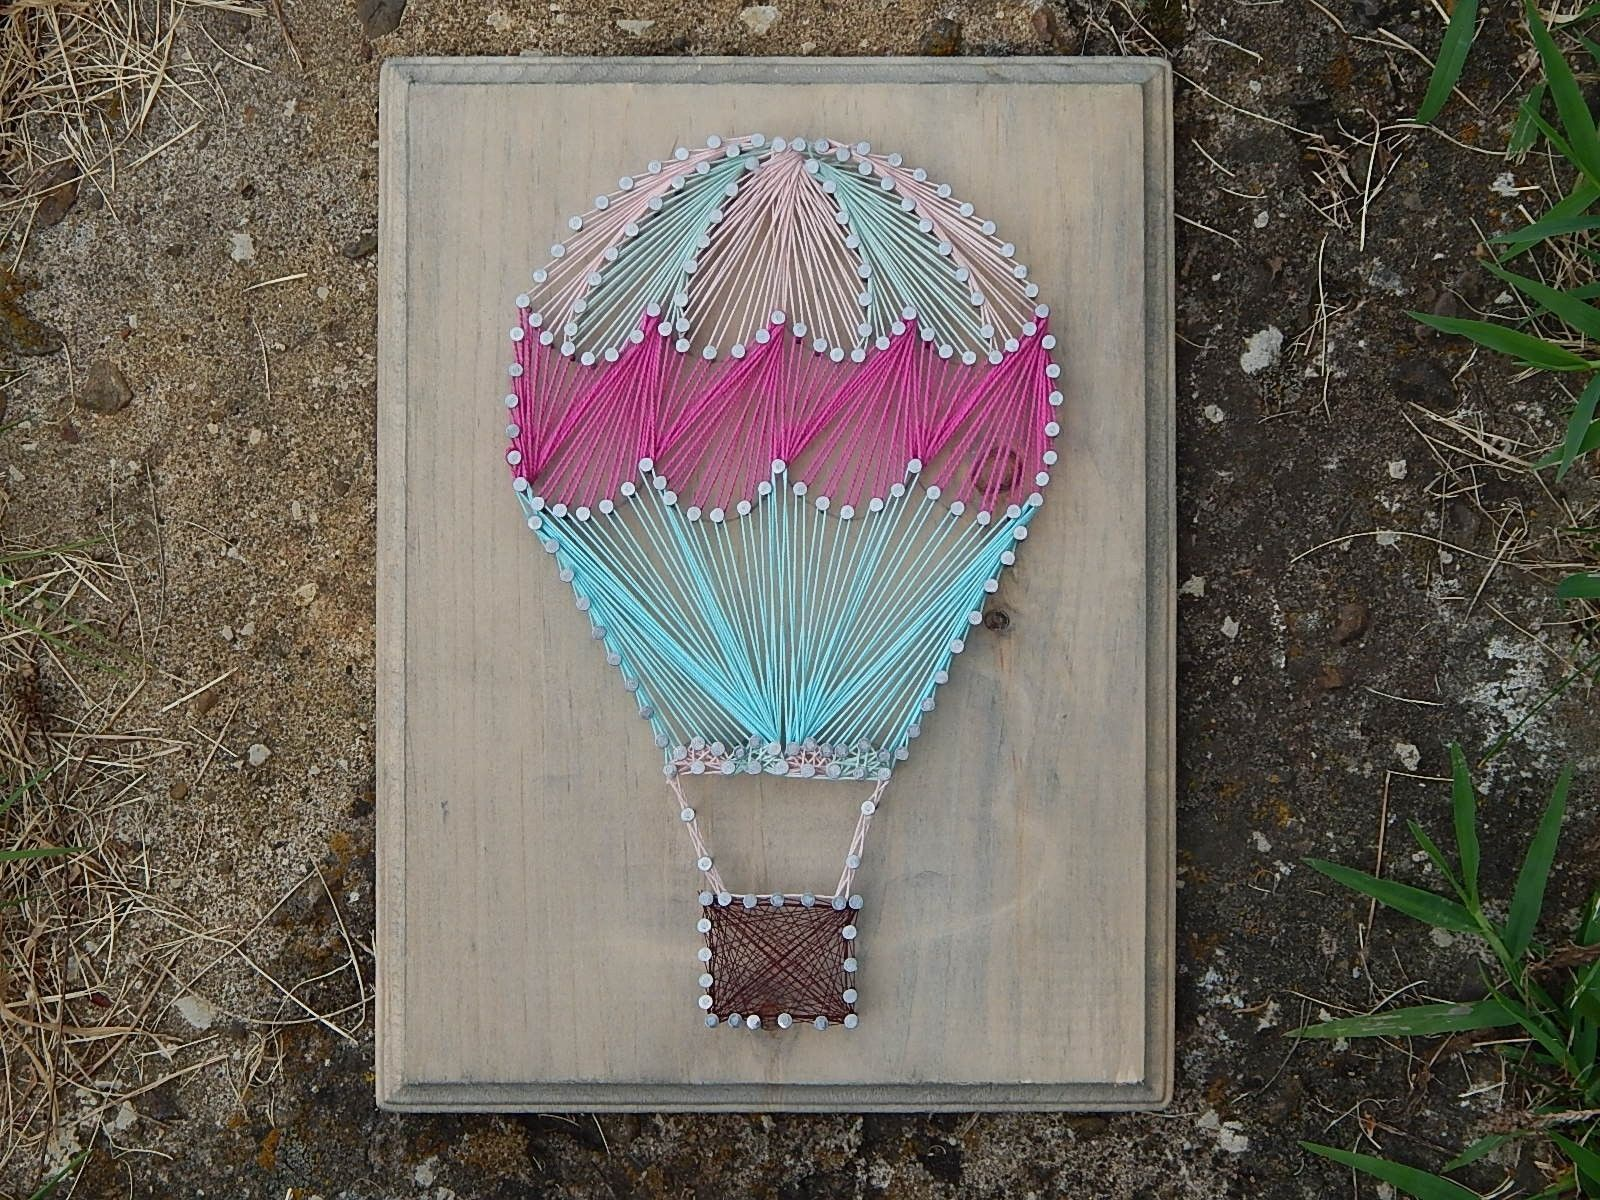 Uncategorized String Art Balloons hot air balloon string art wood metal home decor pinterest art